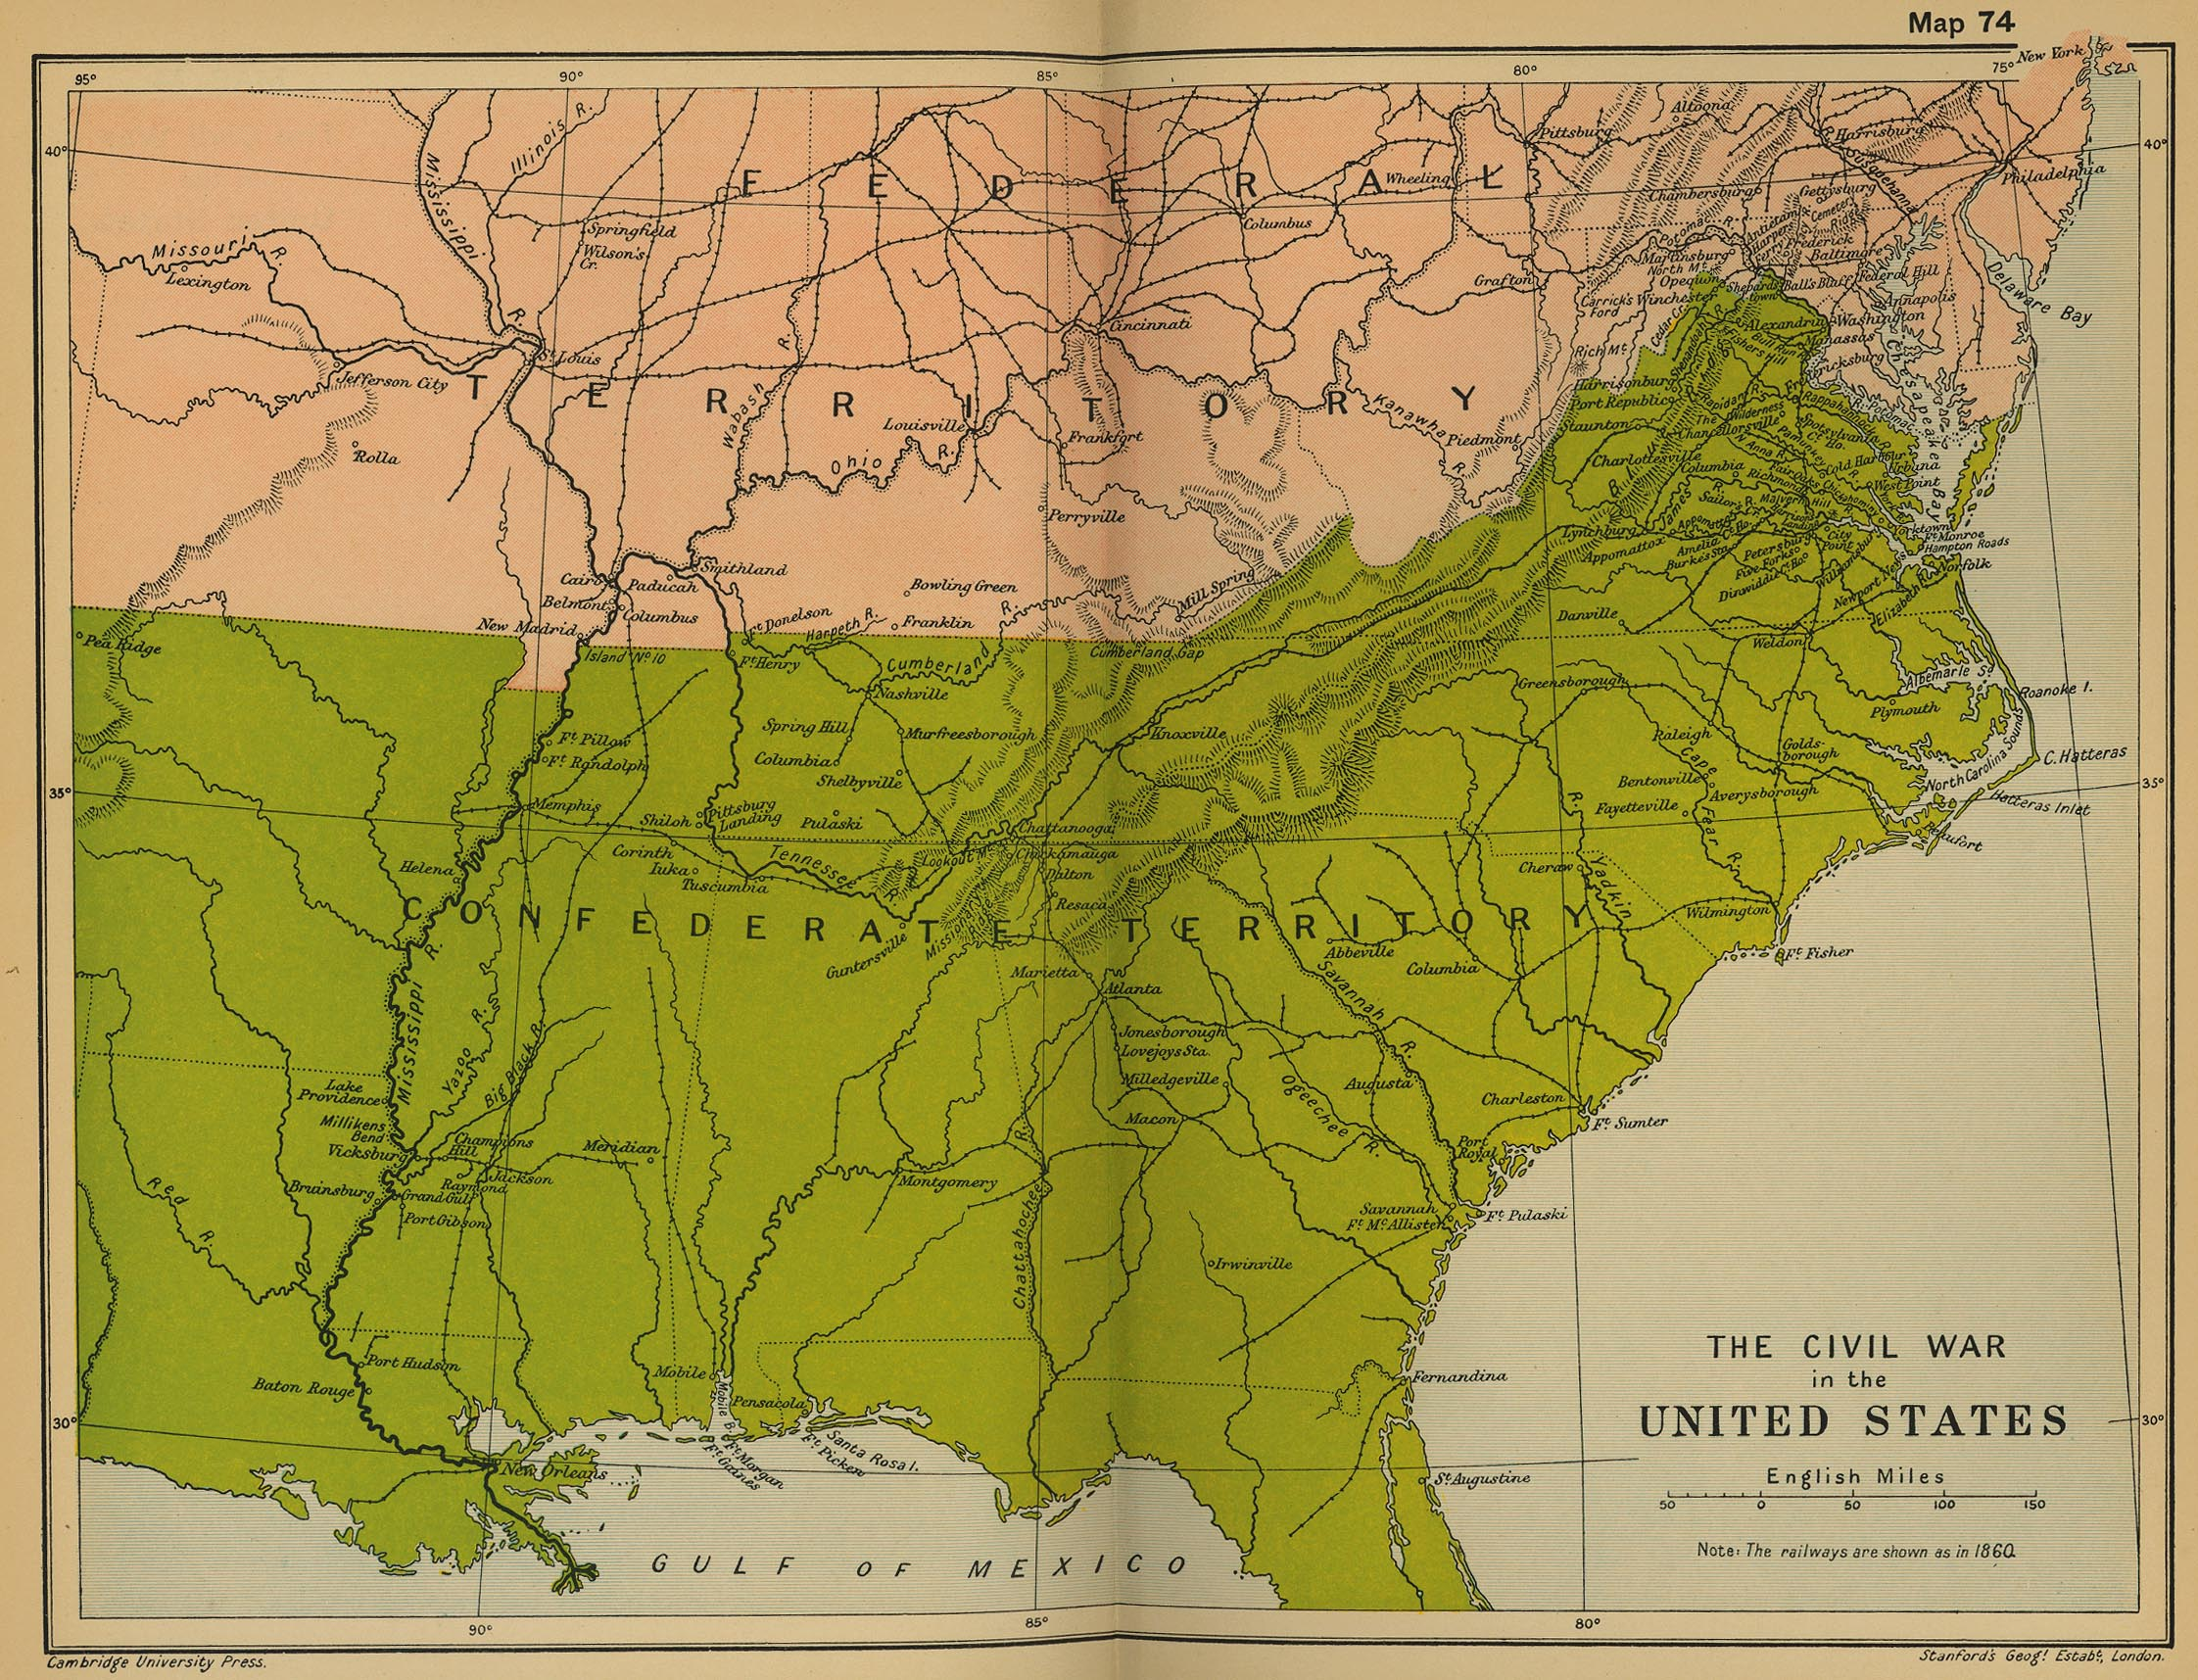 map 73 the civil war in the united states